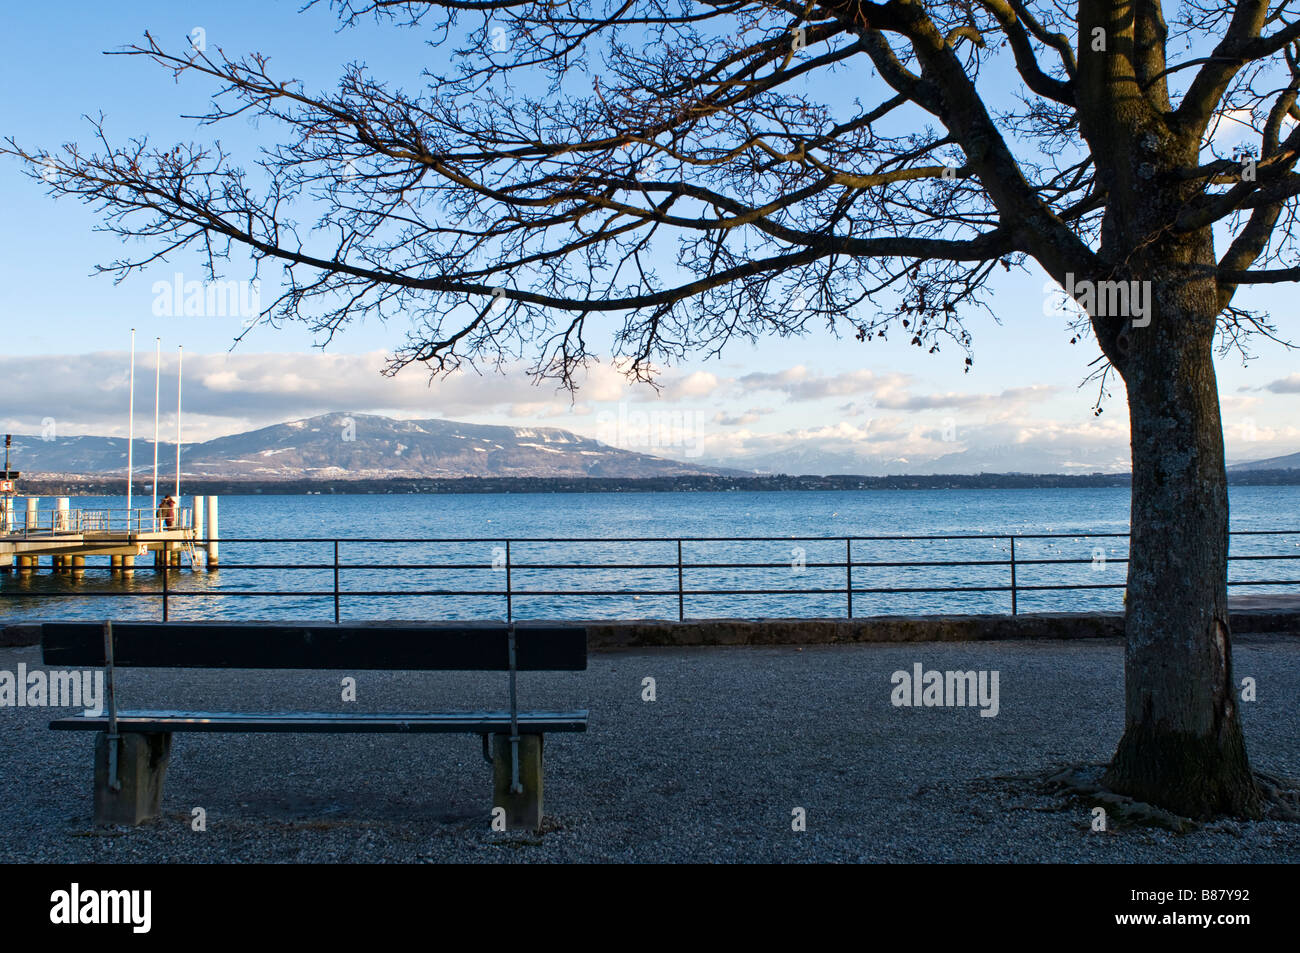 A bench and a tree by the lake leman ( Geneva Lake ) in Coppet, Switzerland - Stock Image